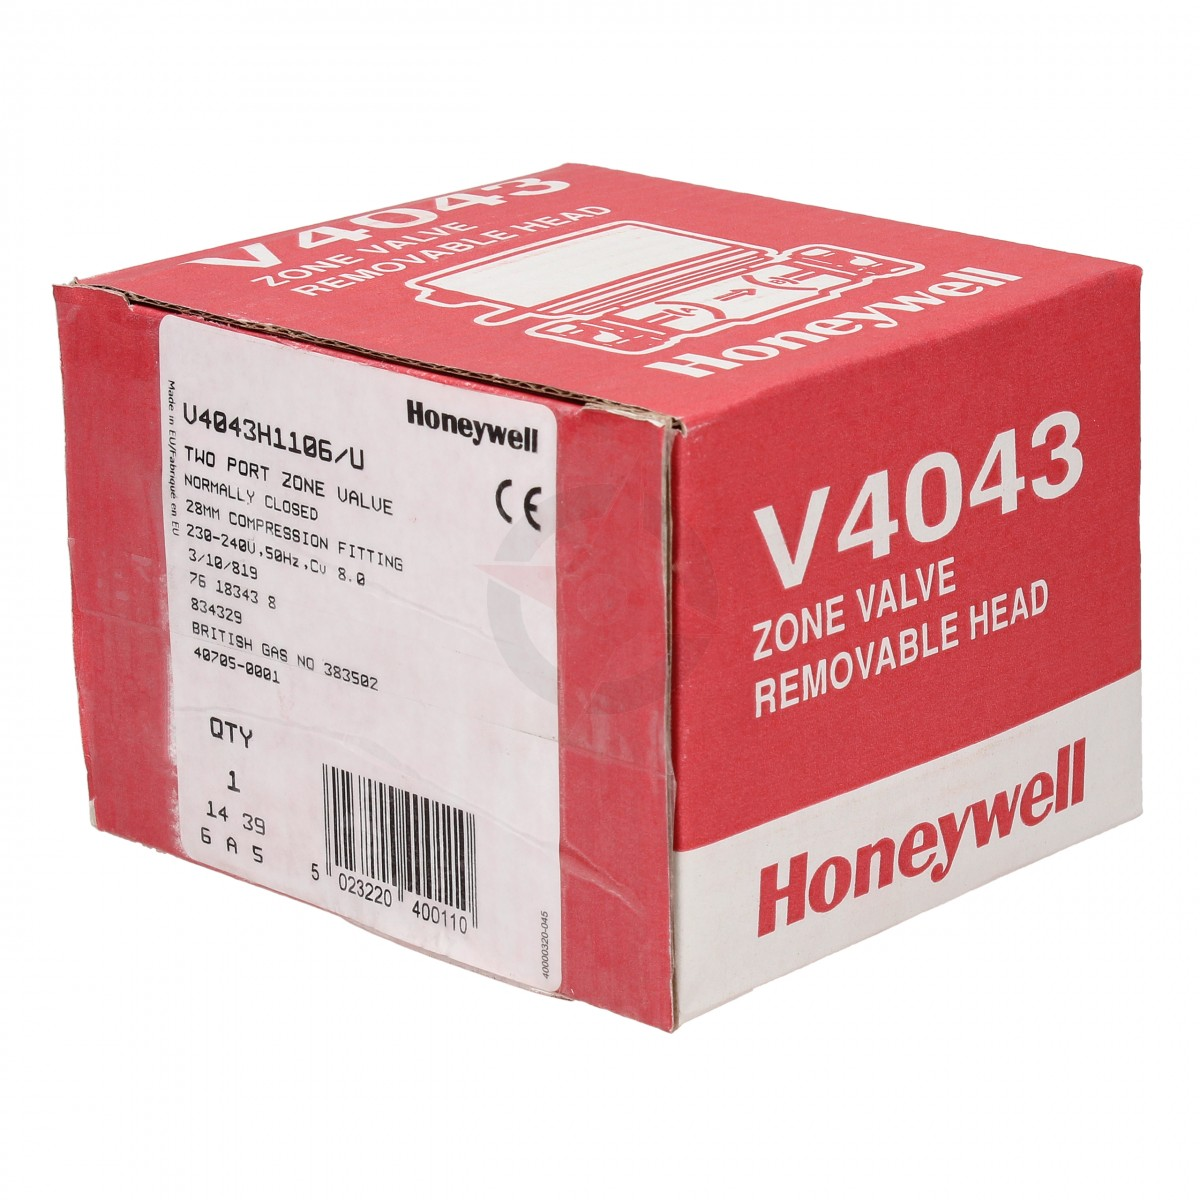 Zone Valves Controls Honeywell Zone Valves Honeywell Zone Valves